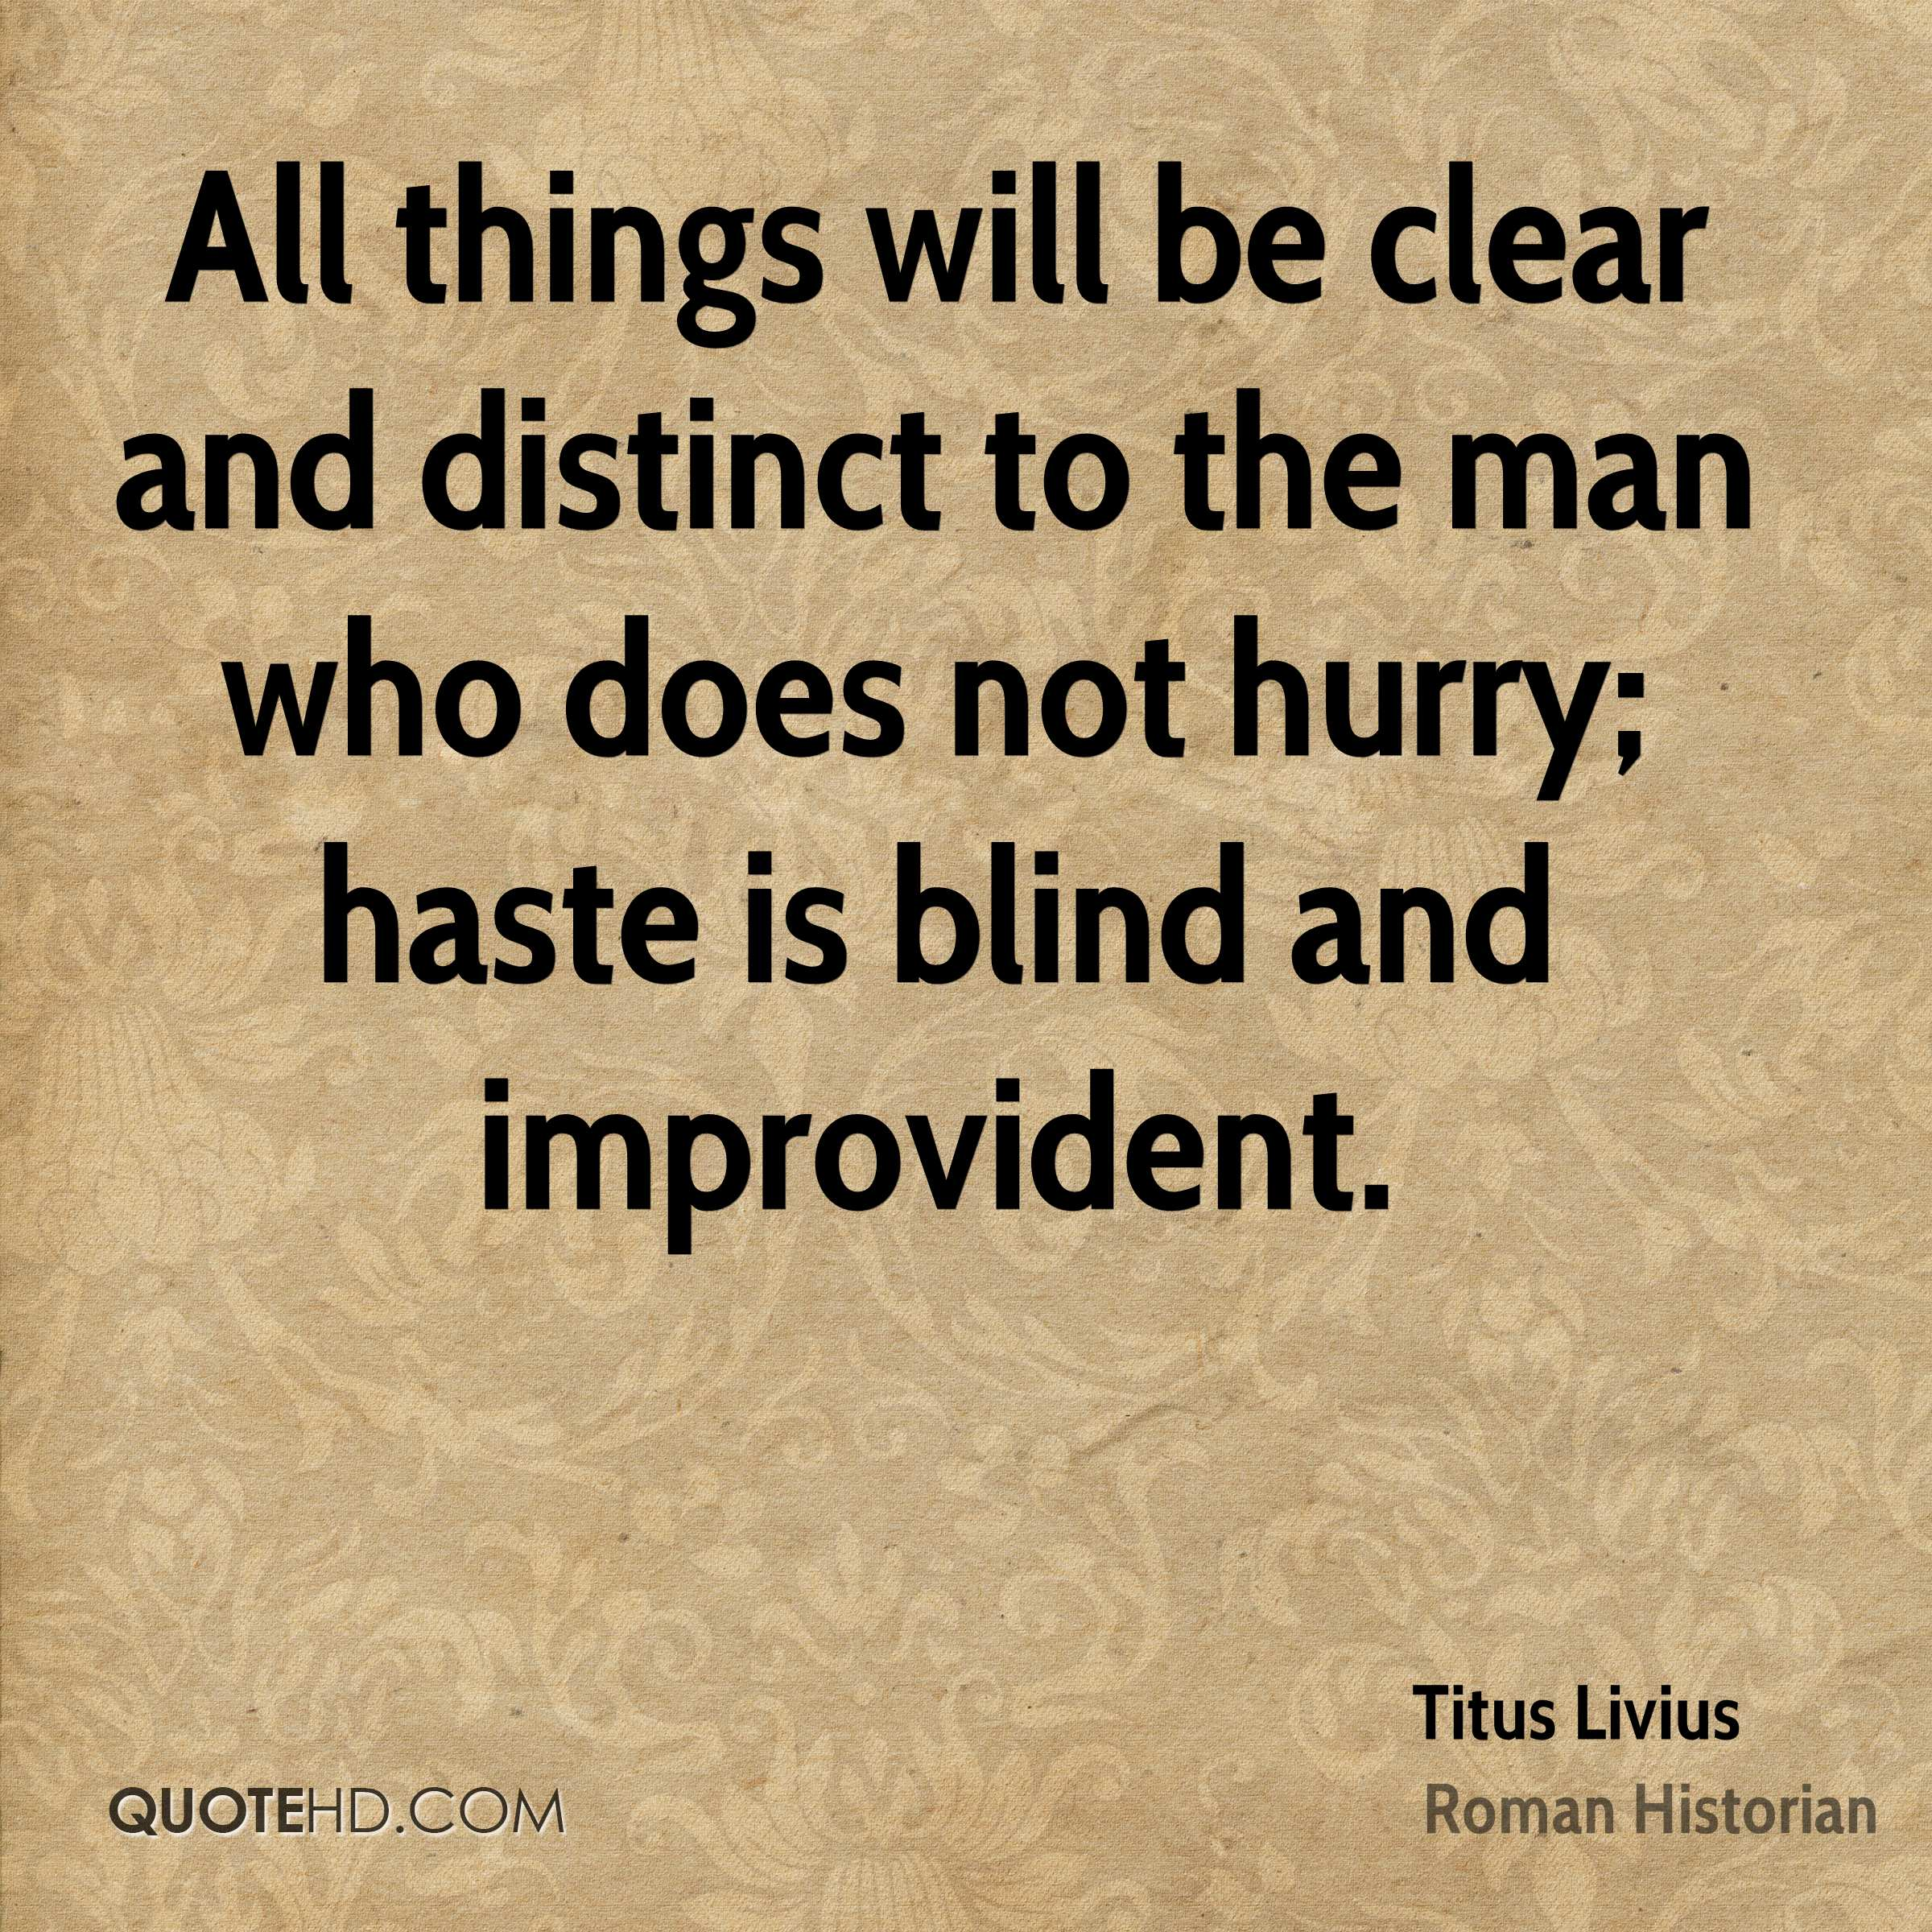 All things will be clear and distinct to the man who does not hurry haste